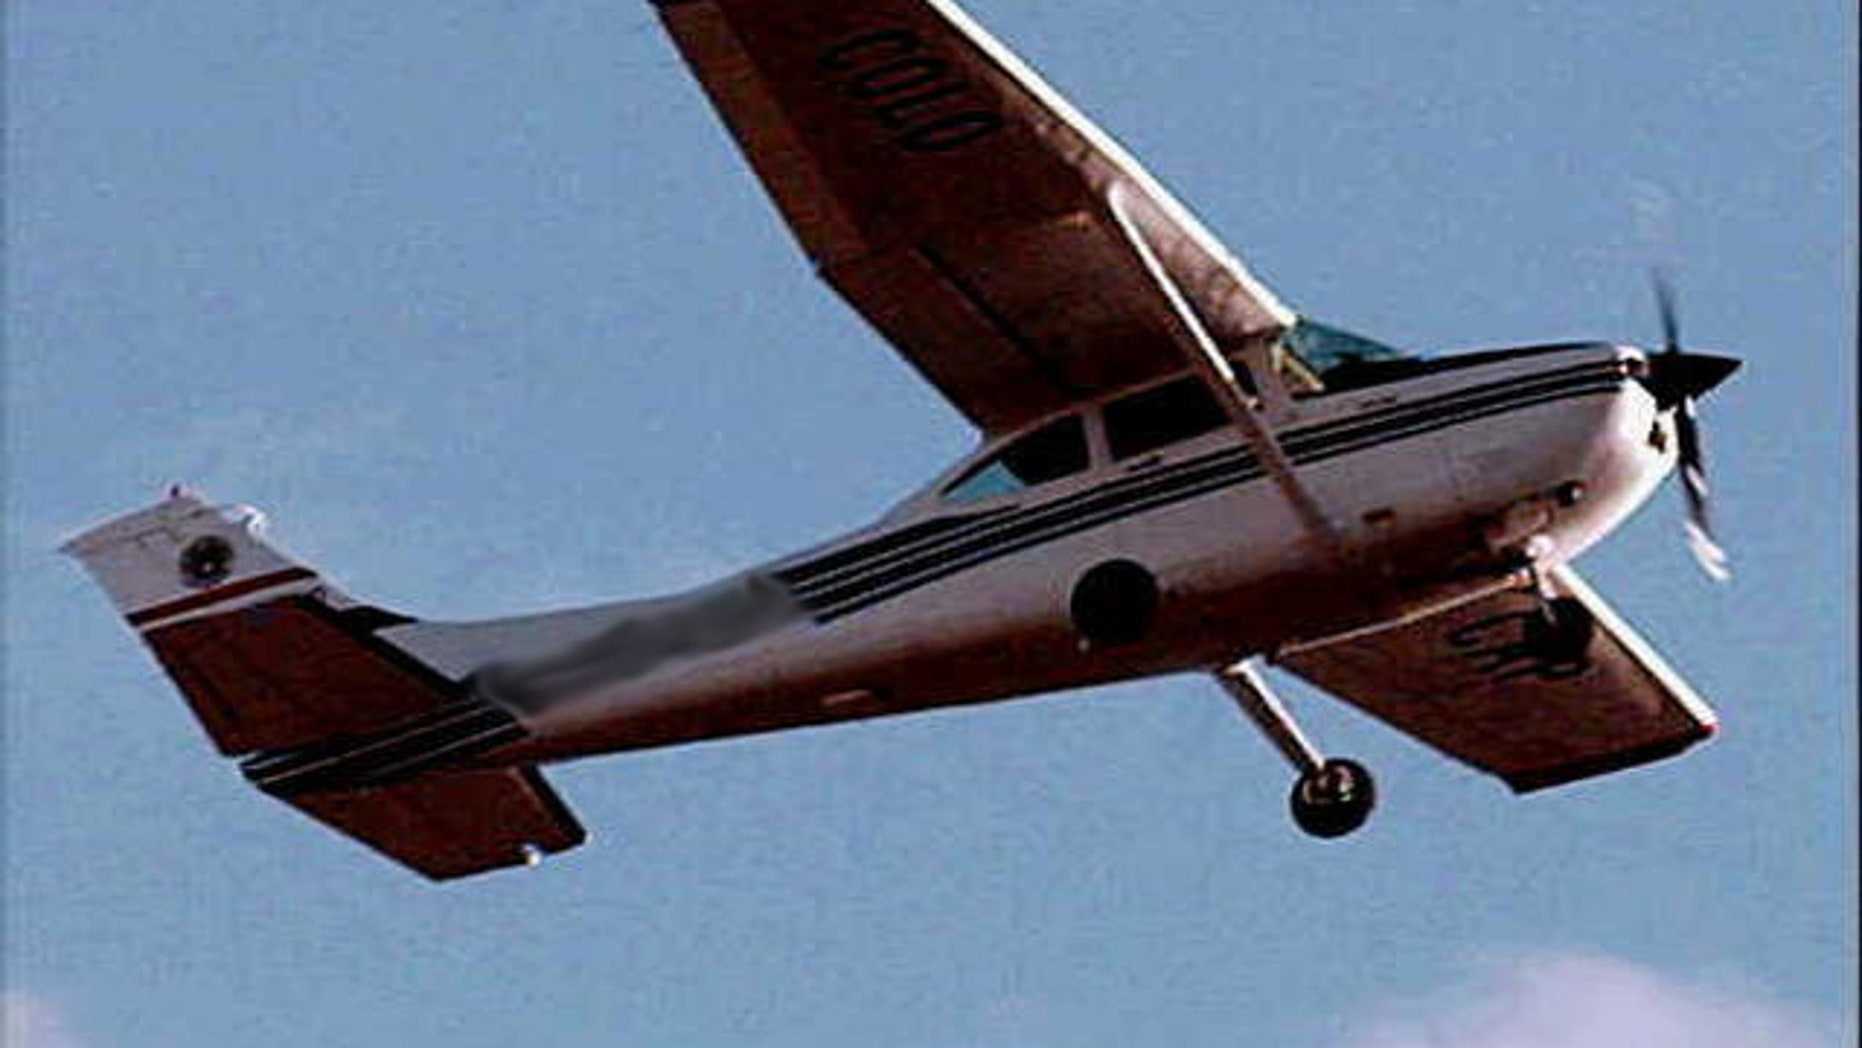 The plane that crashed was a Cessna 172.